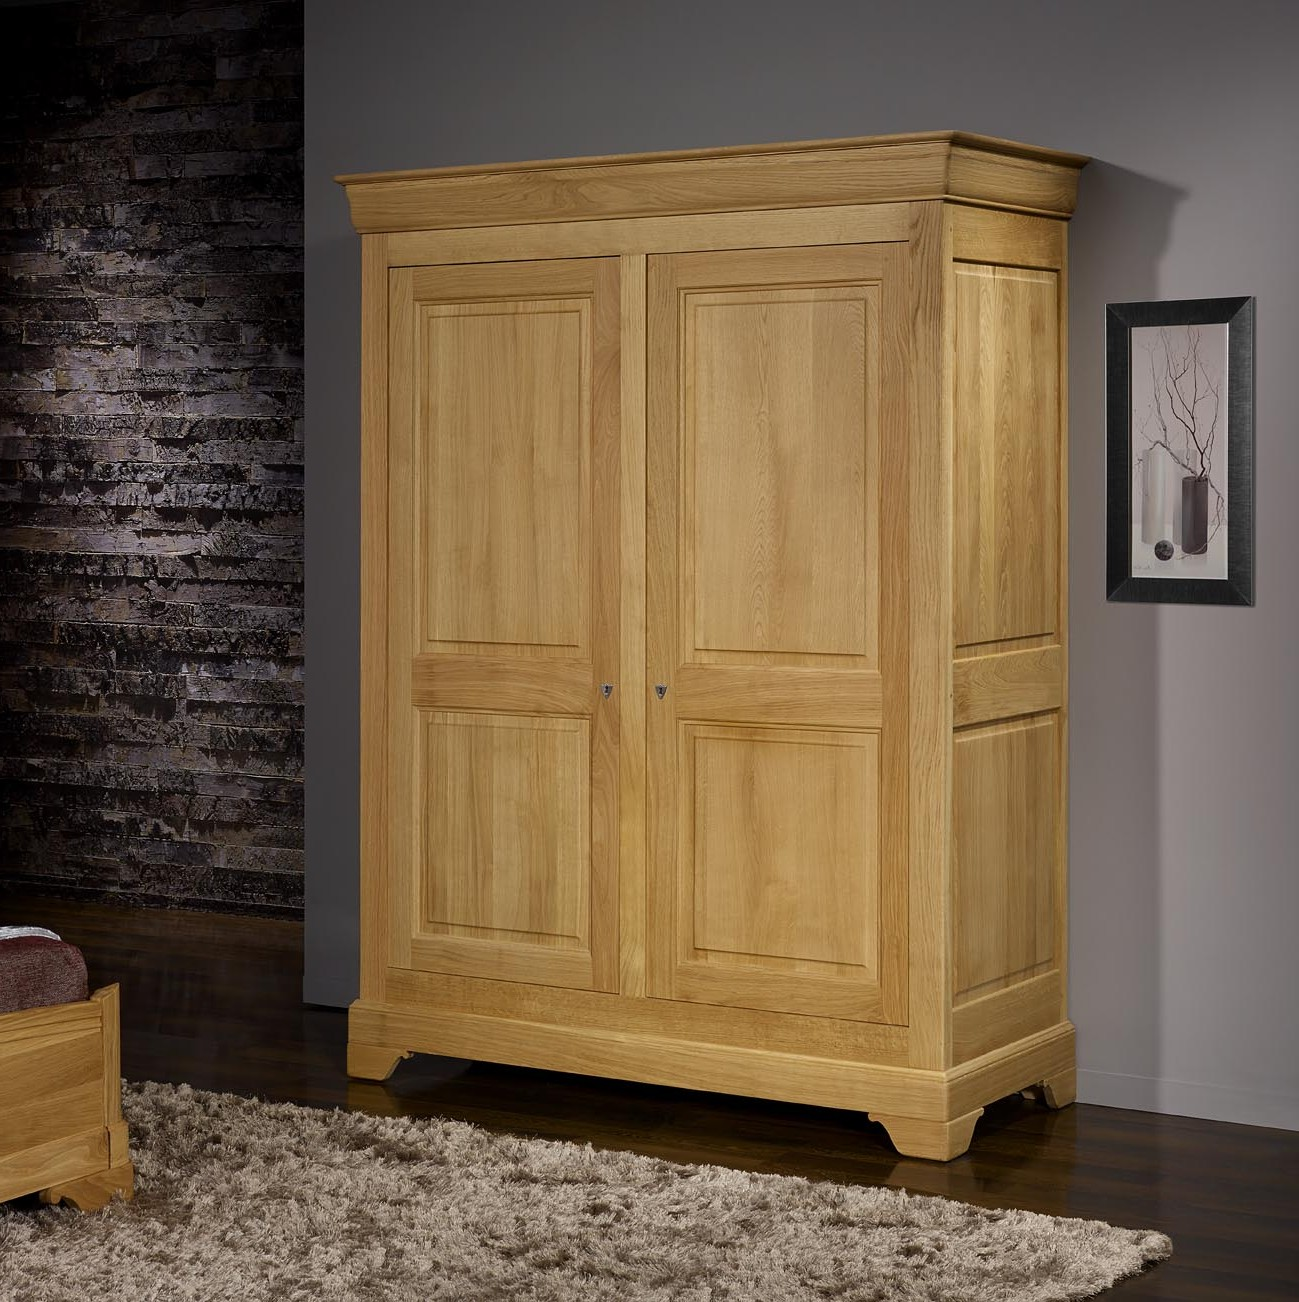 armoire bois brut portes coulissantes armoire id es de. Black Bedroom Furniture Sets. Home Design Ideas